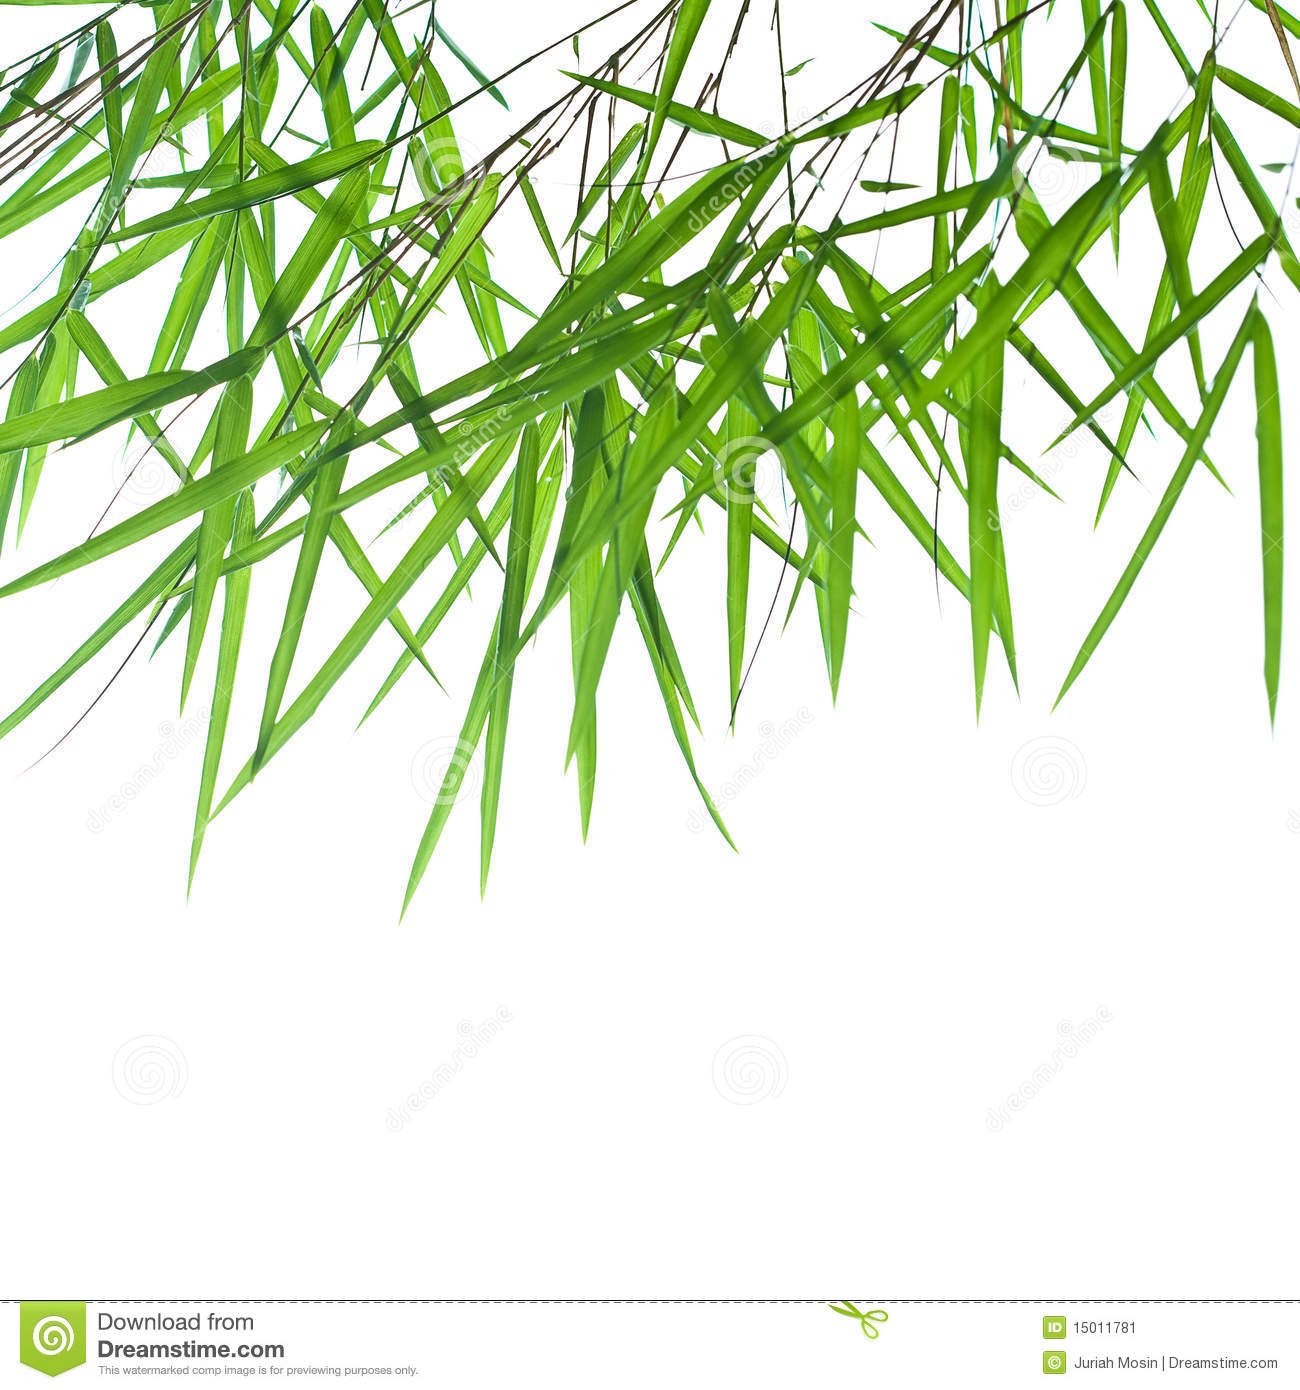 Stems Of Beautiful Green Bamboo Leaves Stock Image.